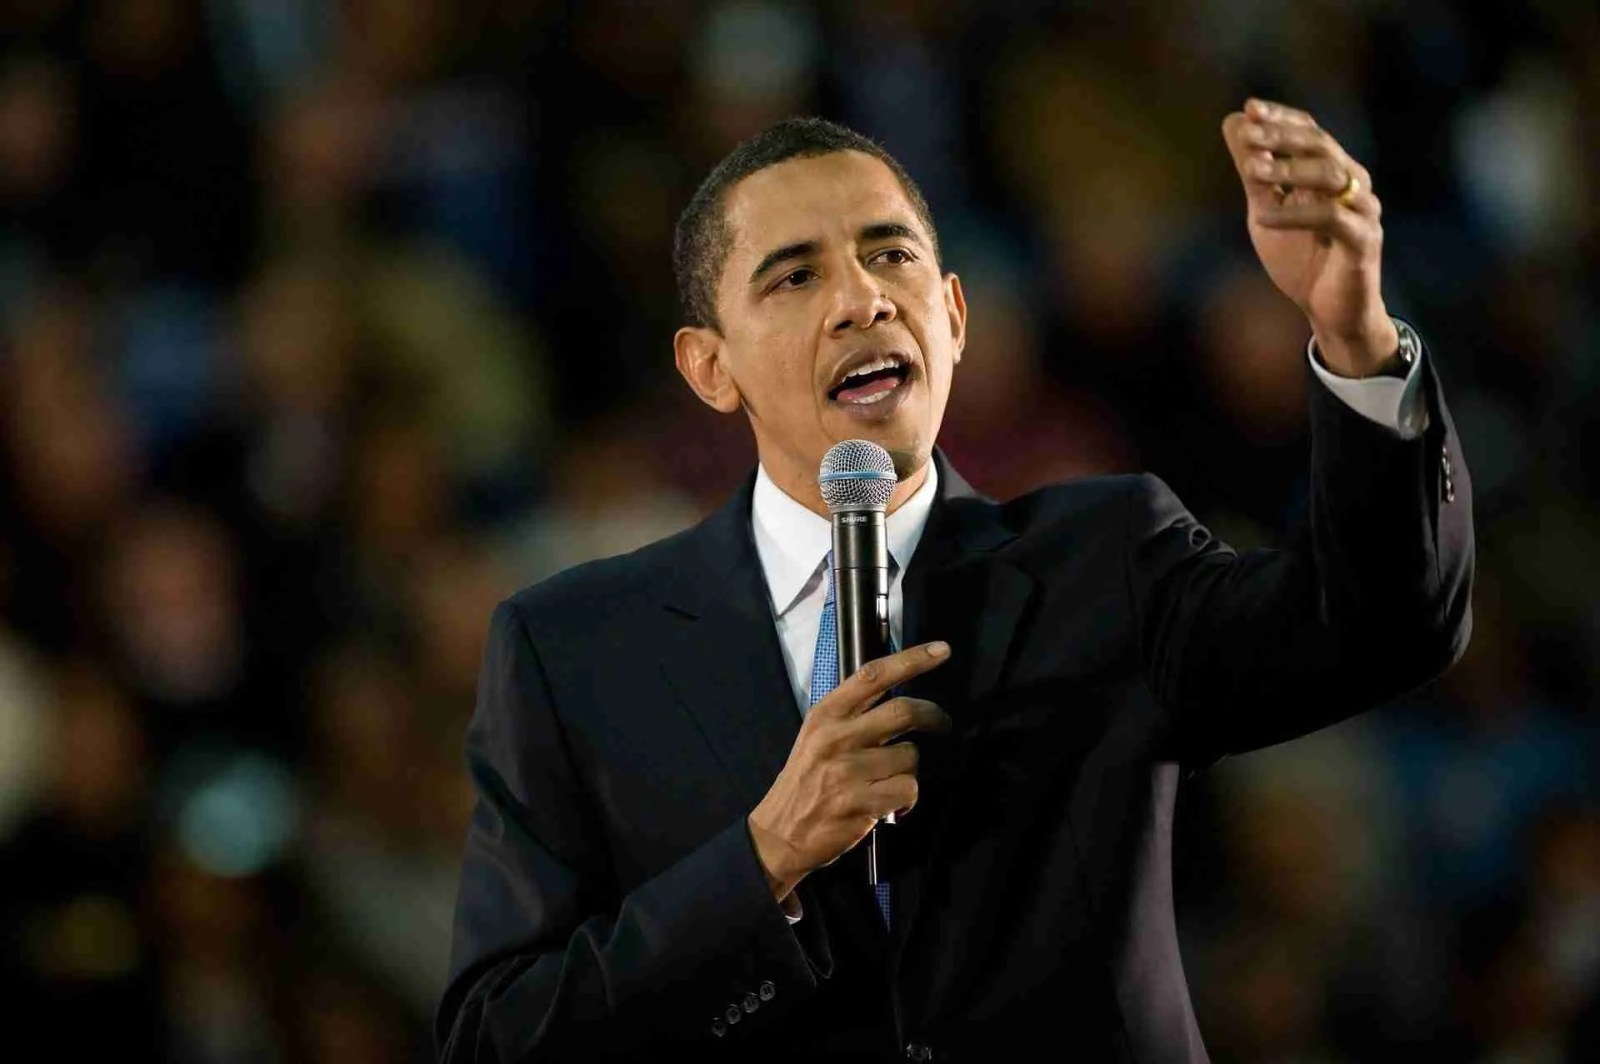 """Obama Applauds """"Poisoning Our Democracy"""" Remarks Aimed at Trump 7"""